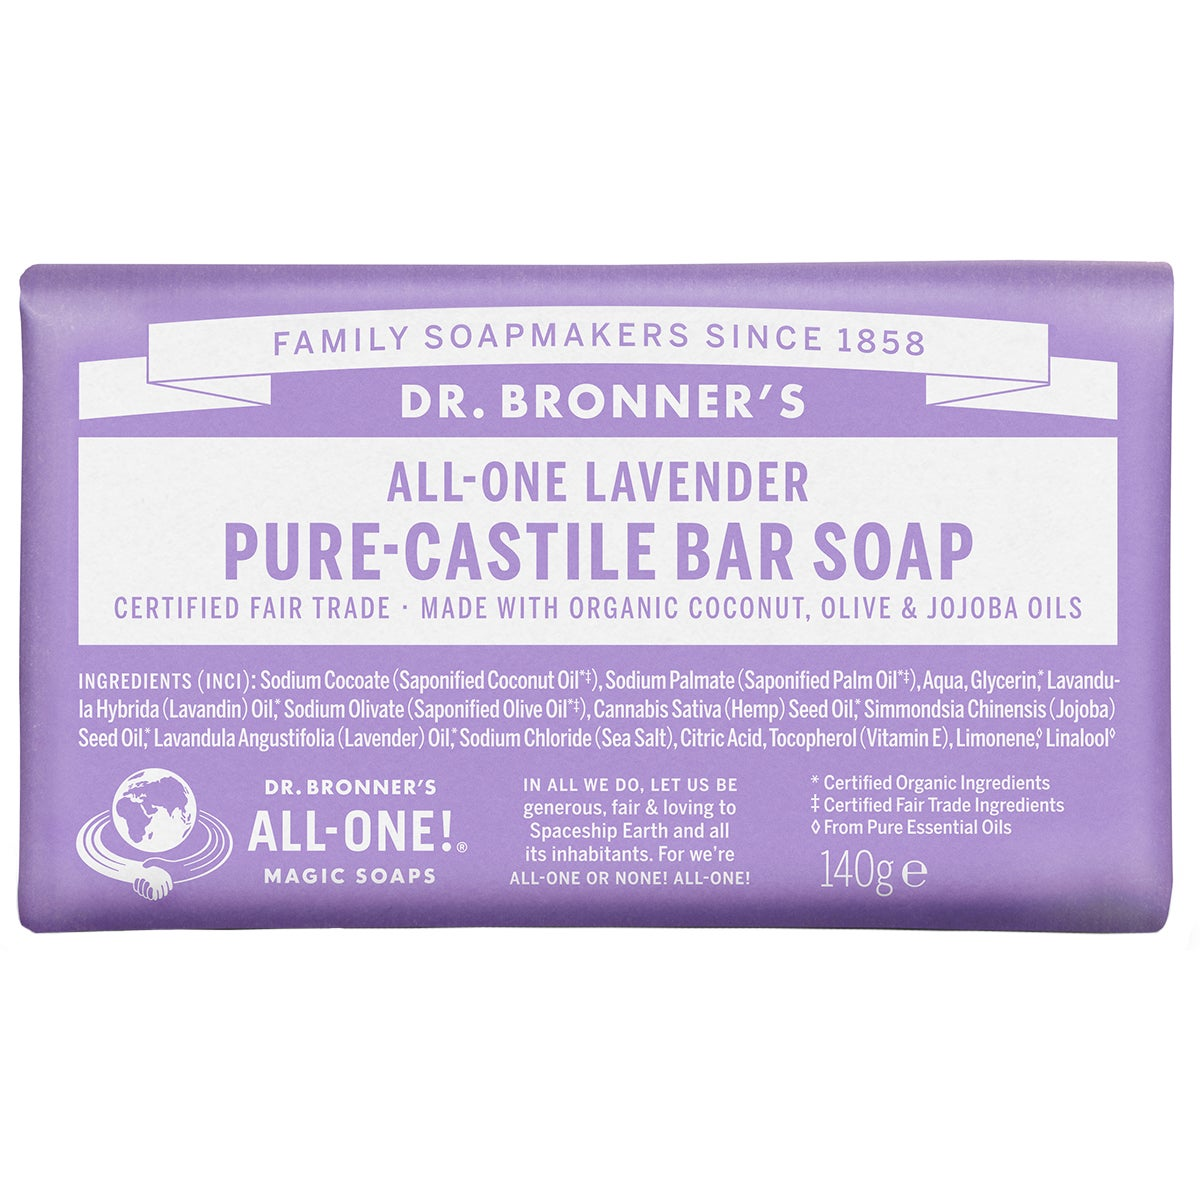 Dr. Bronner's Magic Soaps All-One Hemp Lavender